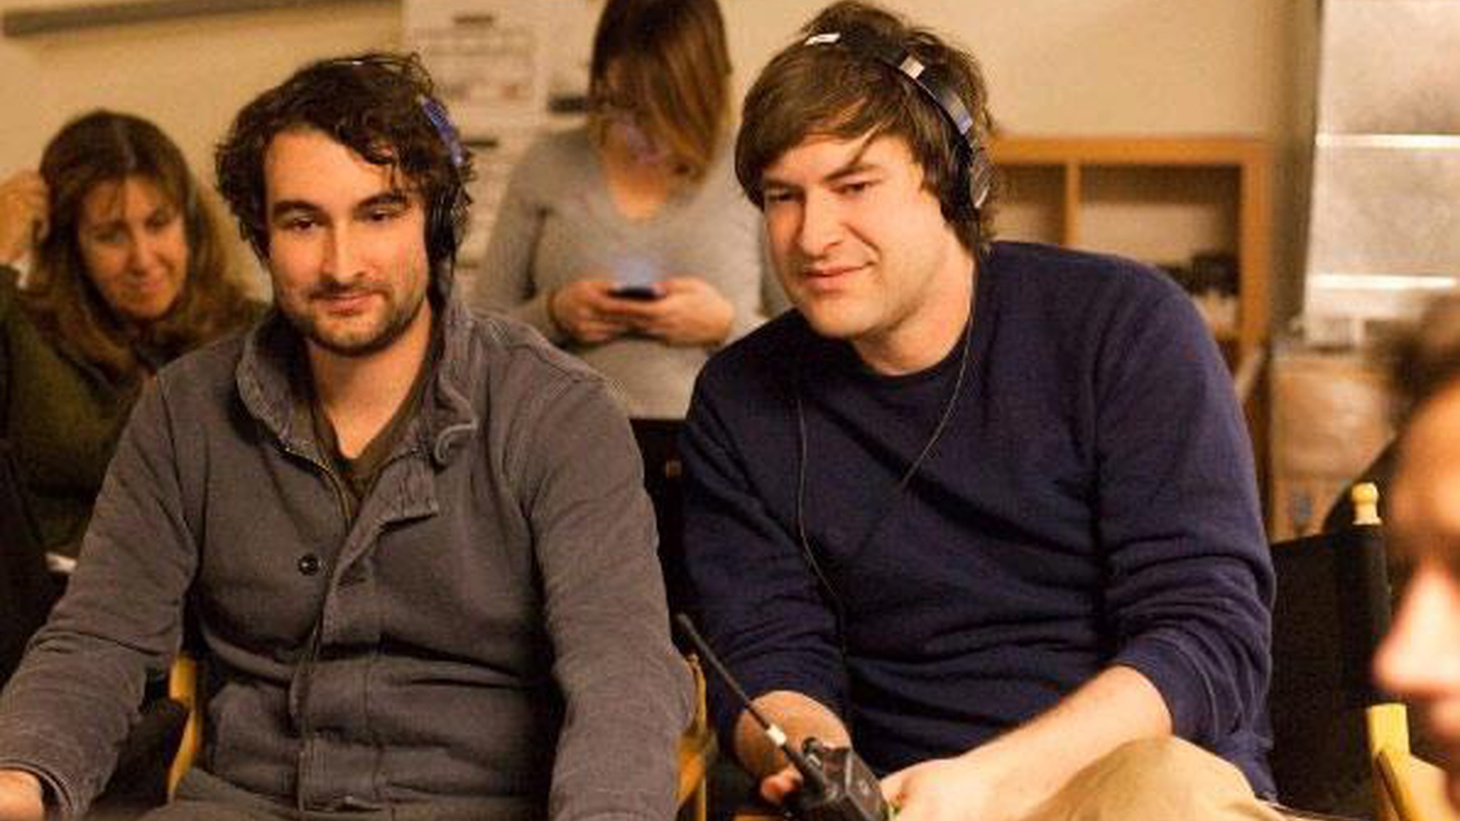 We revisit our conversation with filmmaking brothers Jay and Mark Duplass, whose movie, Cyrus, marked a turning point in their careers. They'd made feature films but never before with studio backing, never with known actors and never with significant budgets. As darlings of the indie world and trailblazers in the mumblecore filmmaking style they gained acclaim at festivals and on blogs, but now they're rising stars in Hollywood and are currently in post production on their next film, Jeff Who Lives at Home.